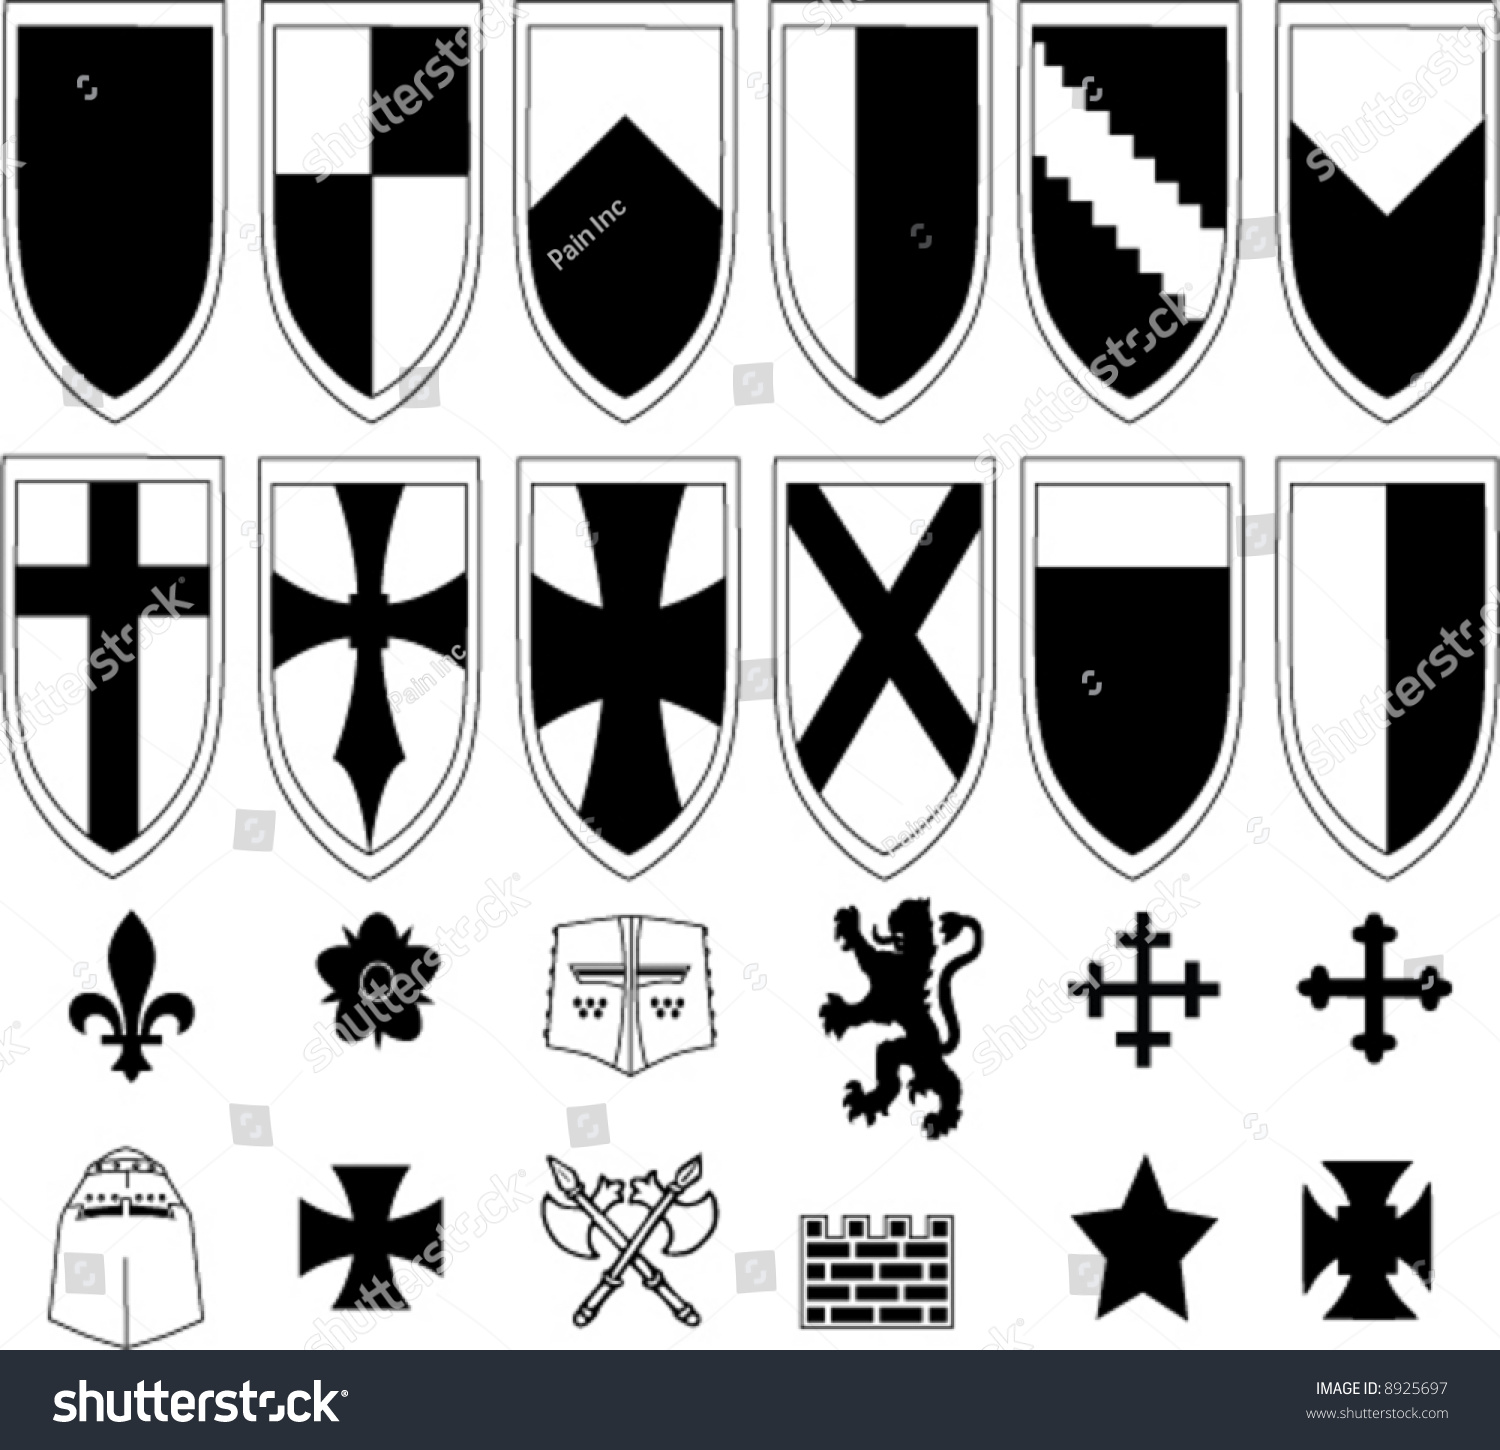 Shields emblems create your own logo stock vector 8925697 for Draw my own logo